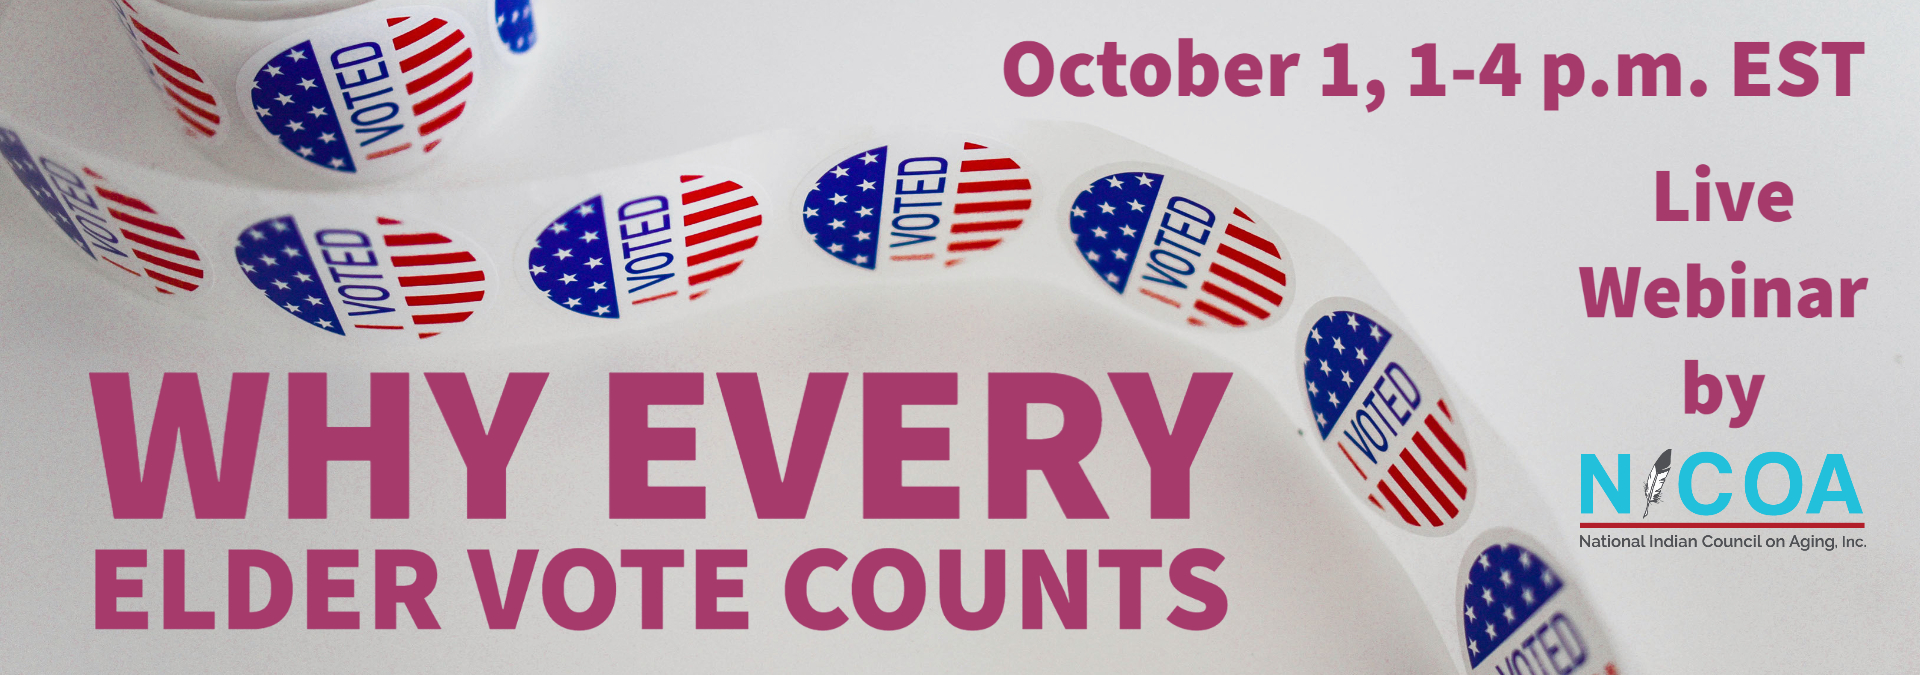 """Banner advertising for Oct. 1 webinar """"Why Every Elder Vote Counts"""" with clickable link to register"""